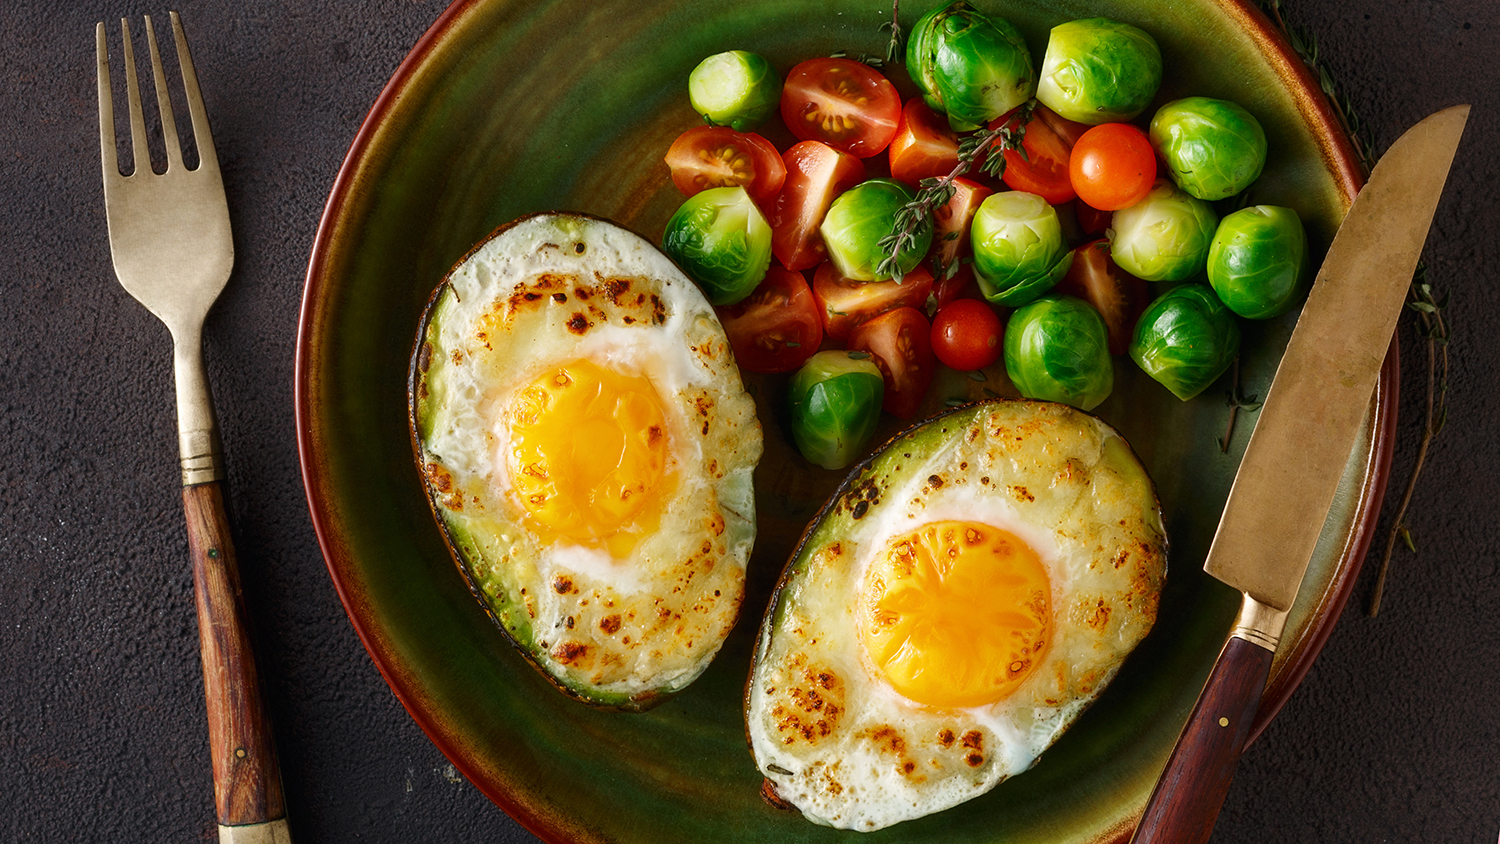 Avocado with eggs ketogenic diet